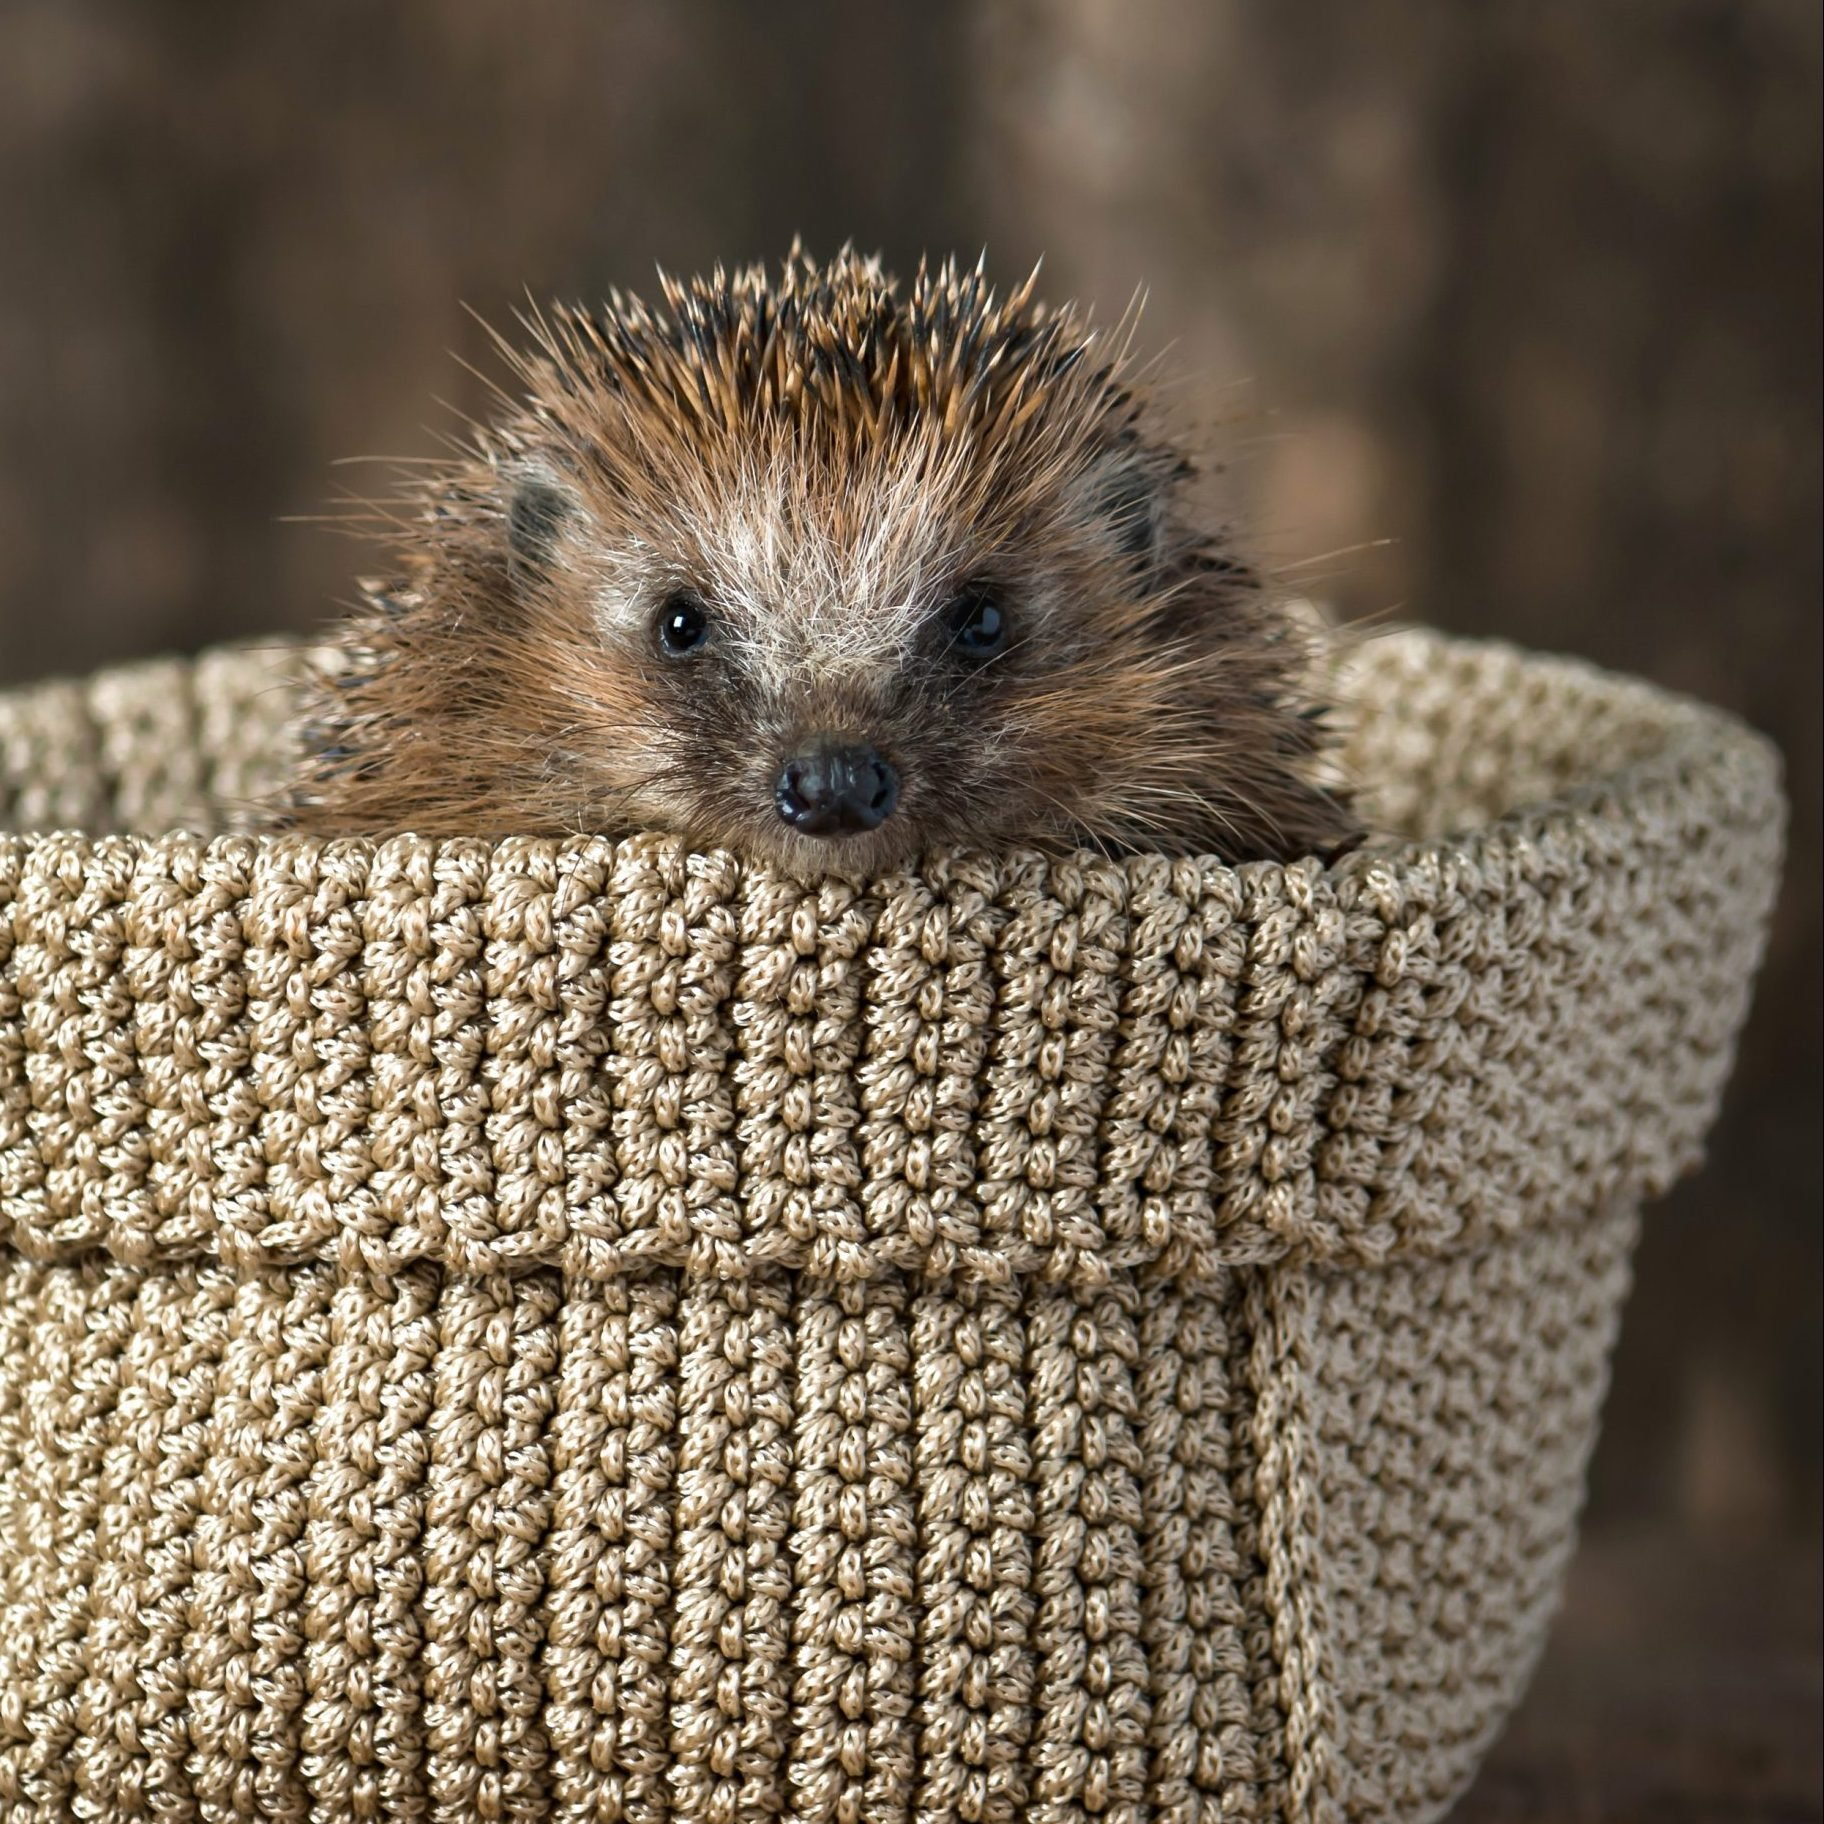 Cute young hedgehog in the knitted basket.